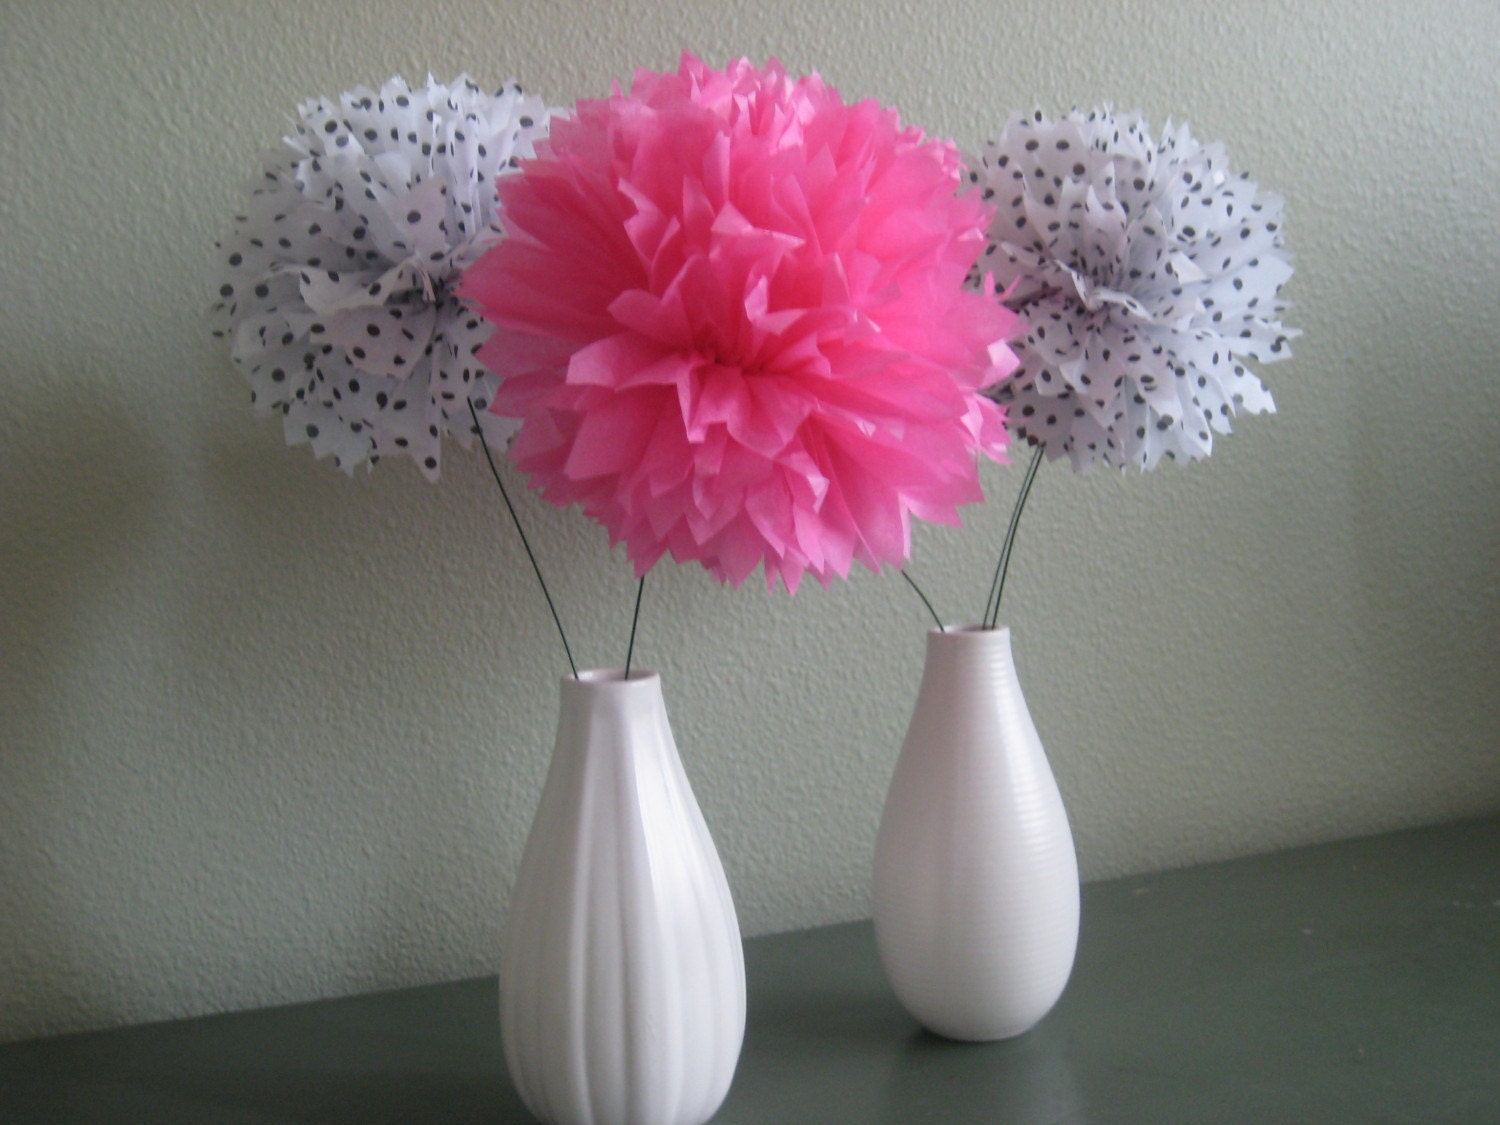 5 Pomettes Mini Tissue Pom Flowers By Prosttothehost On Etsy